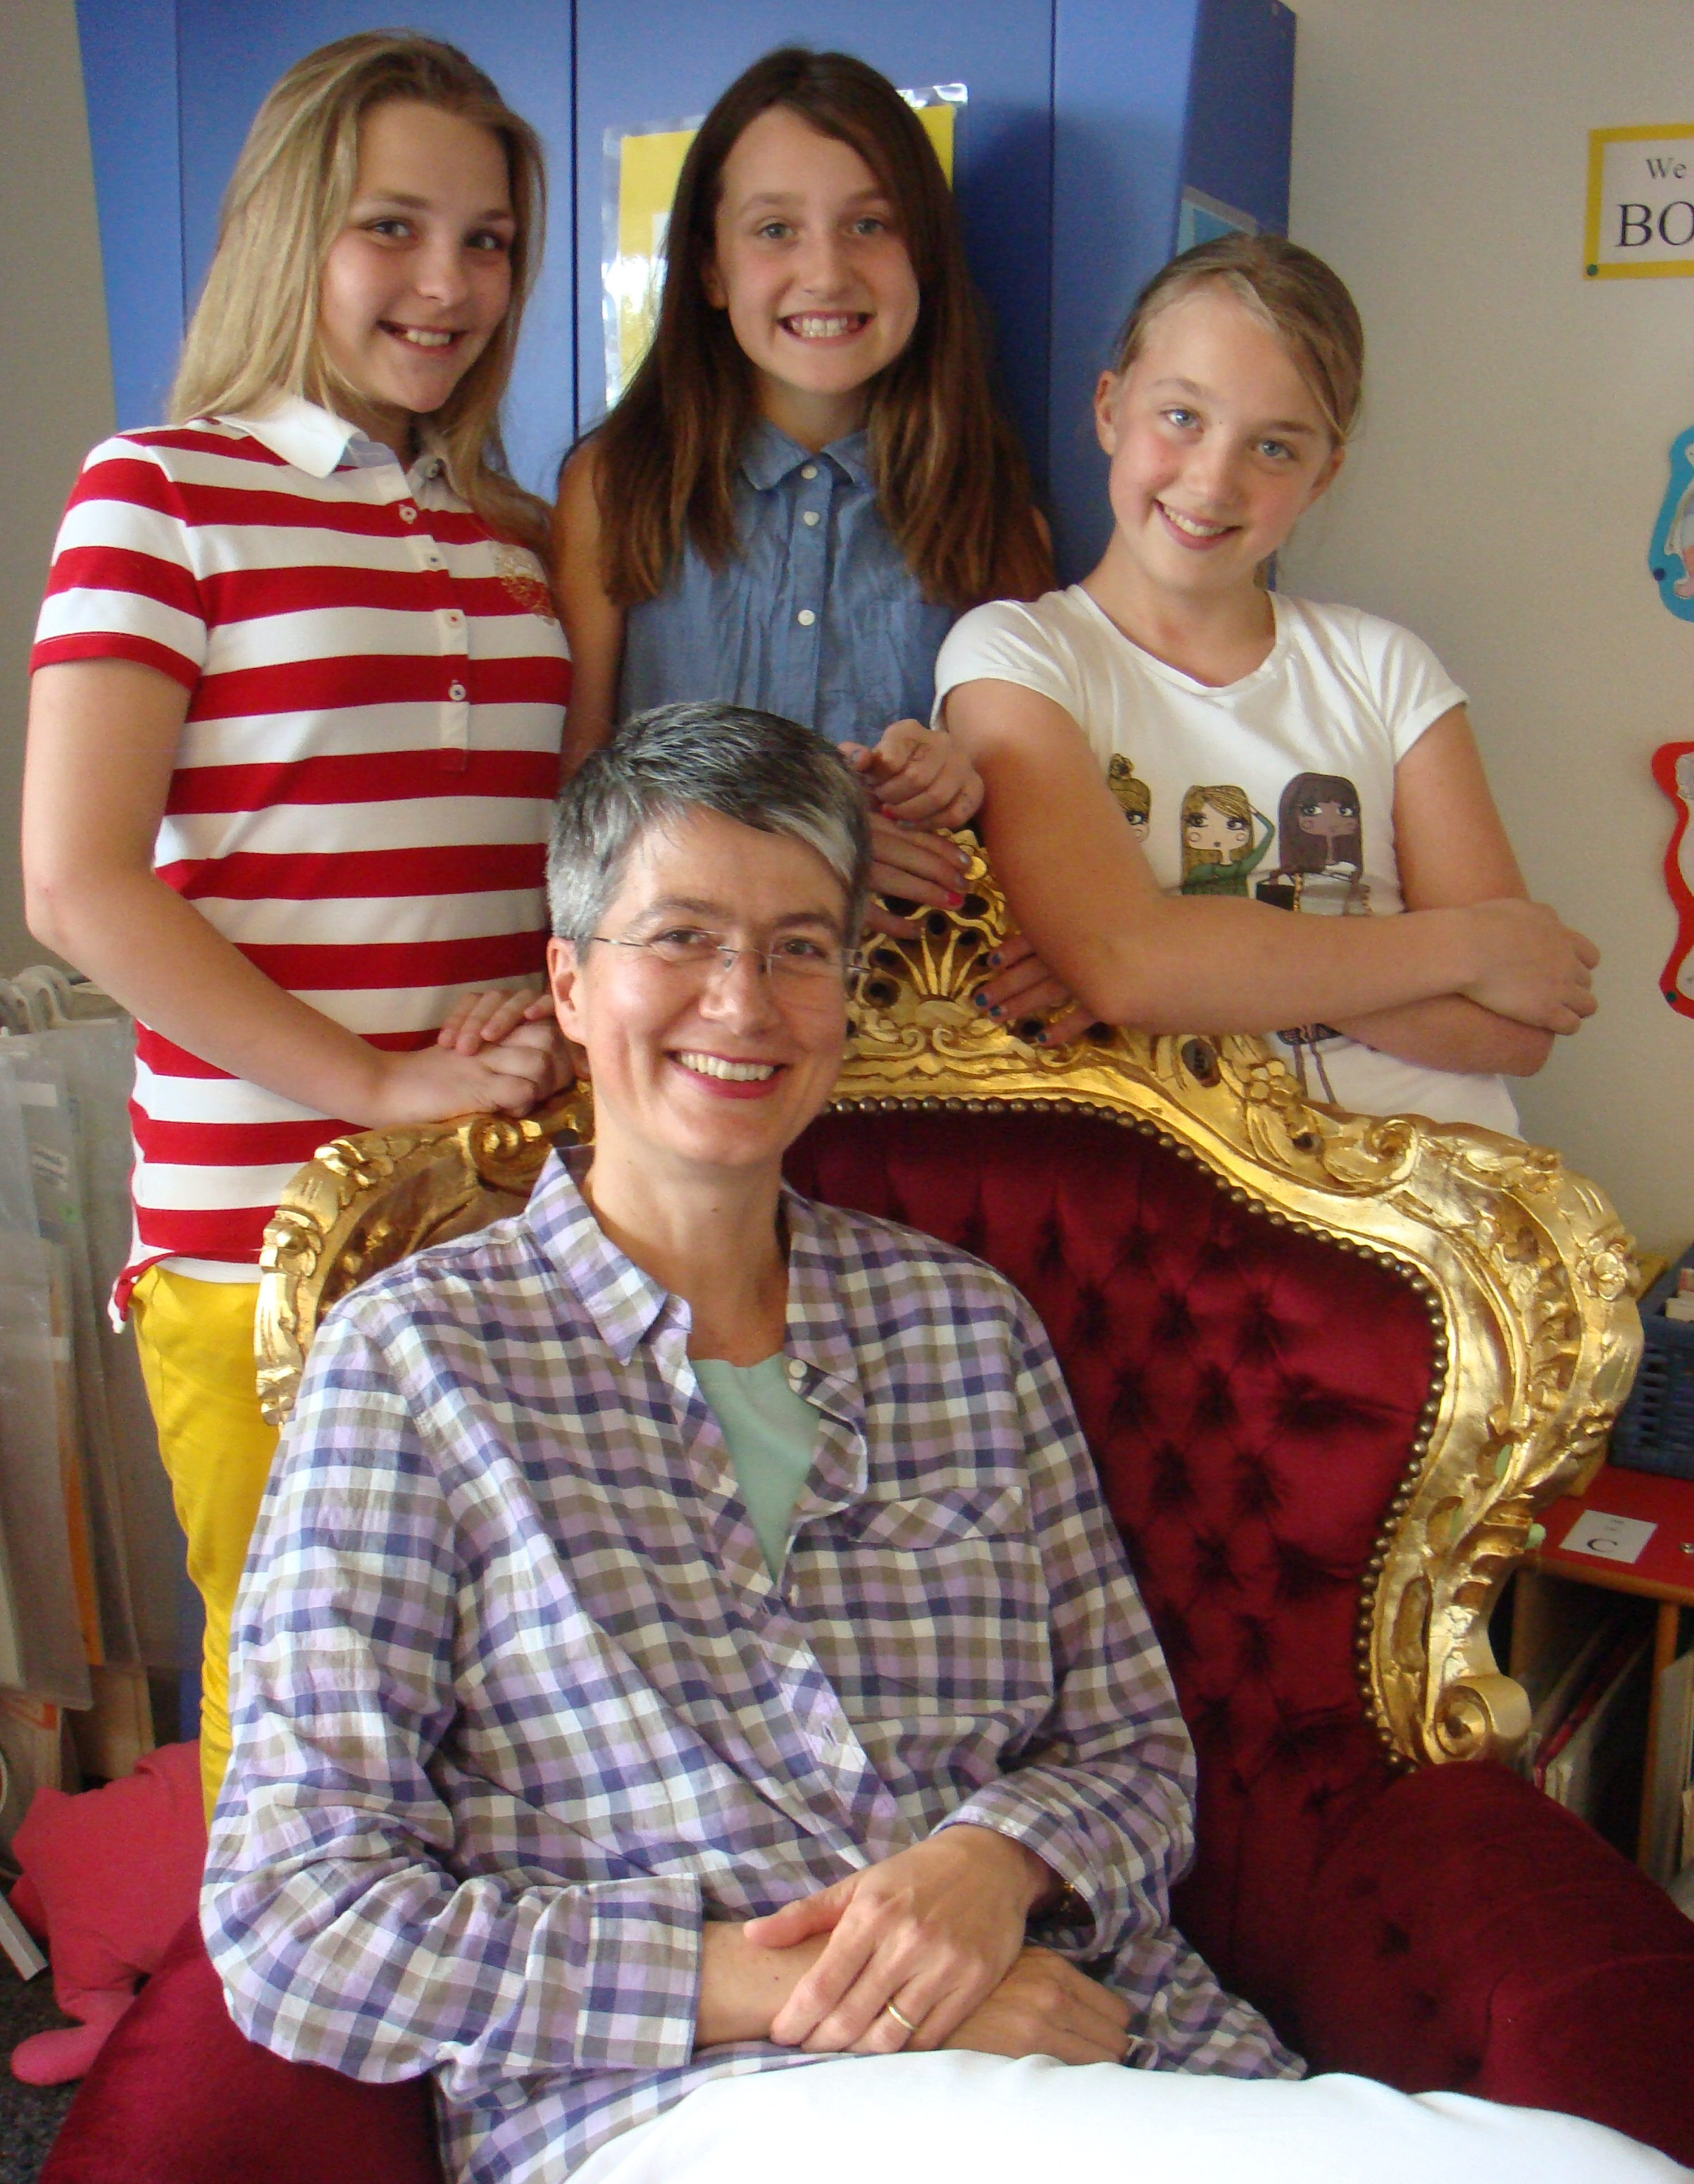 I had a wonderful visit with fifth graders at the International School in Stuttgart, Germany. Thank you, Betty Turpin, for letting me sit in that royal chair!